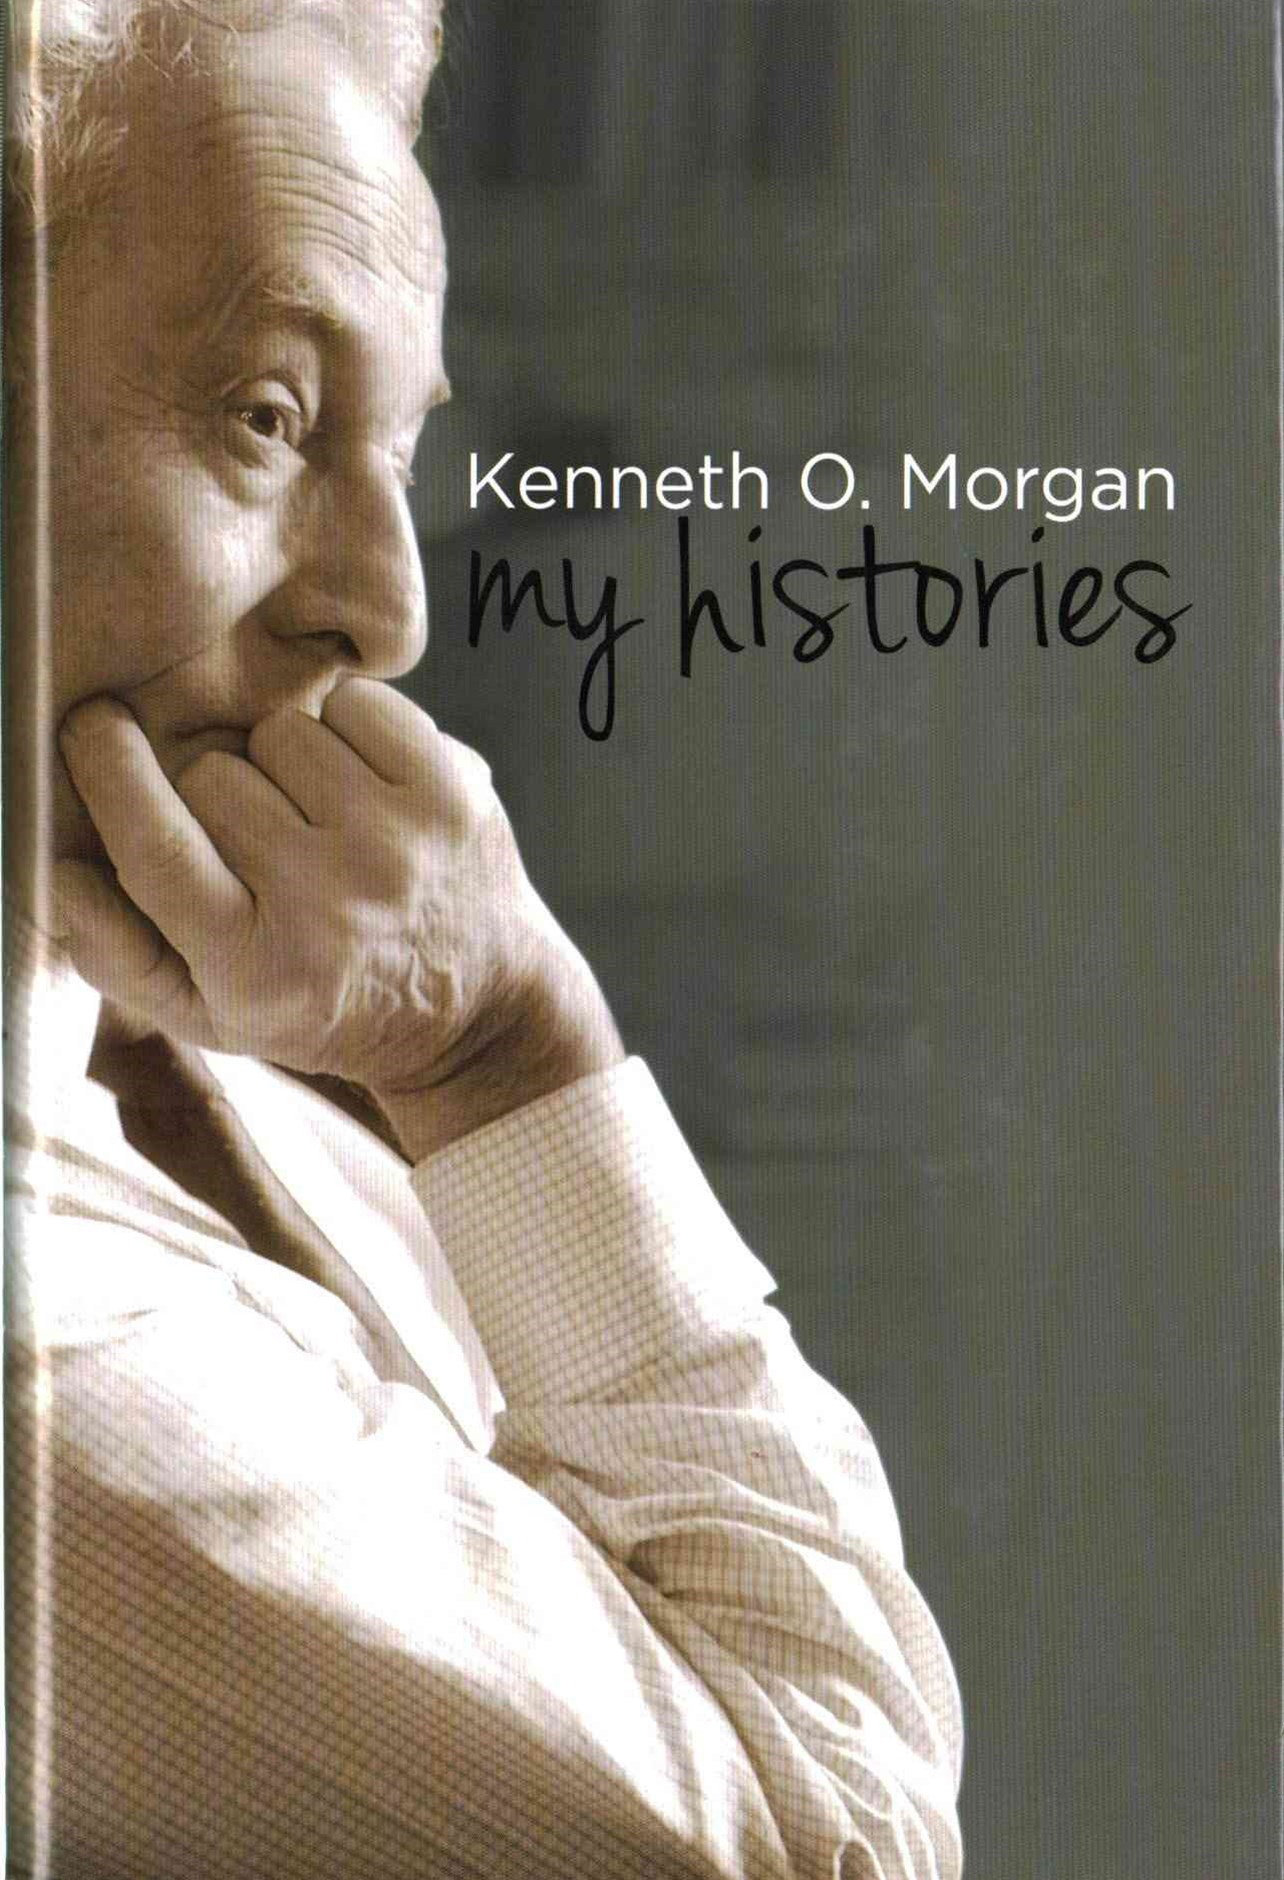 Kenneth O. Morgan